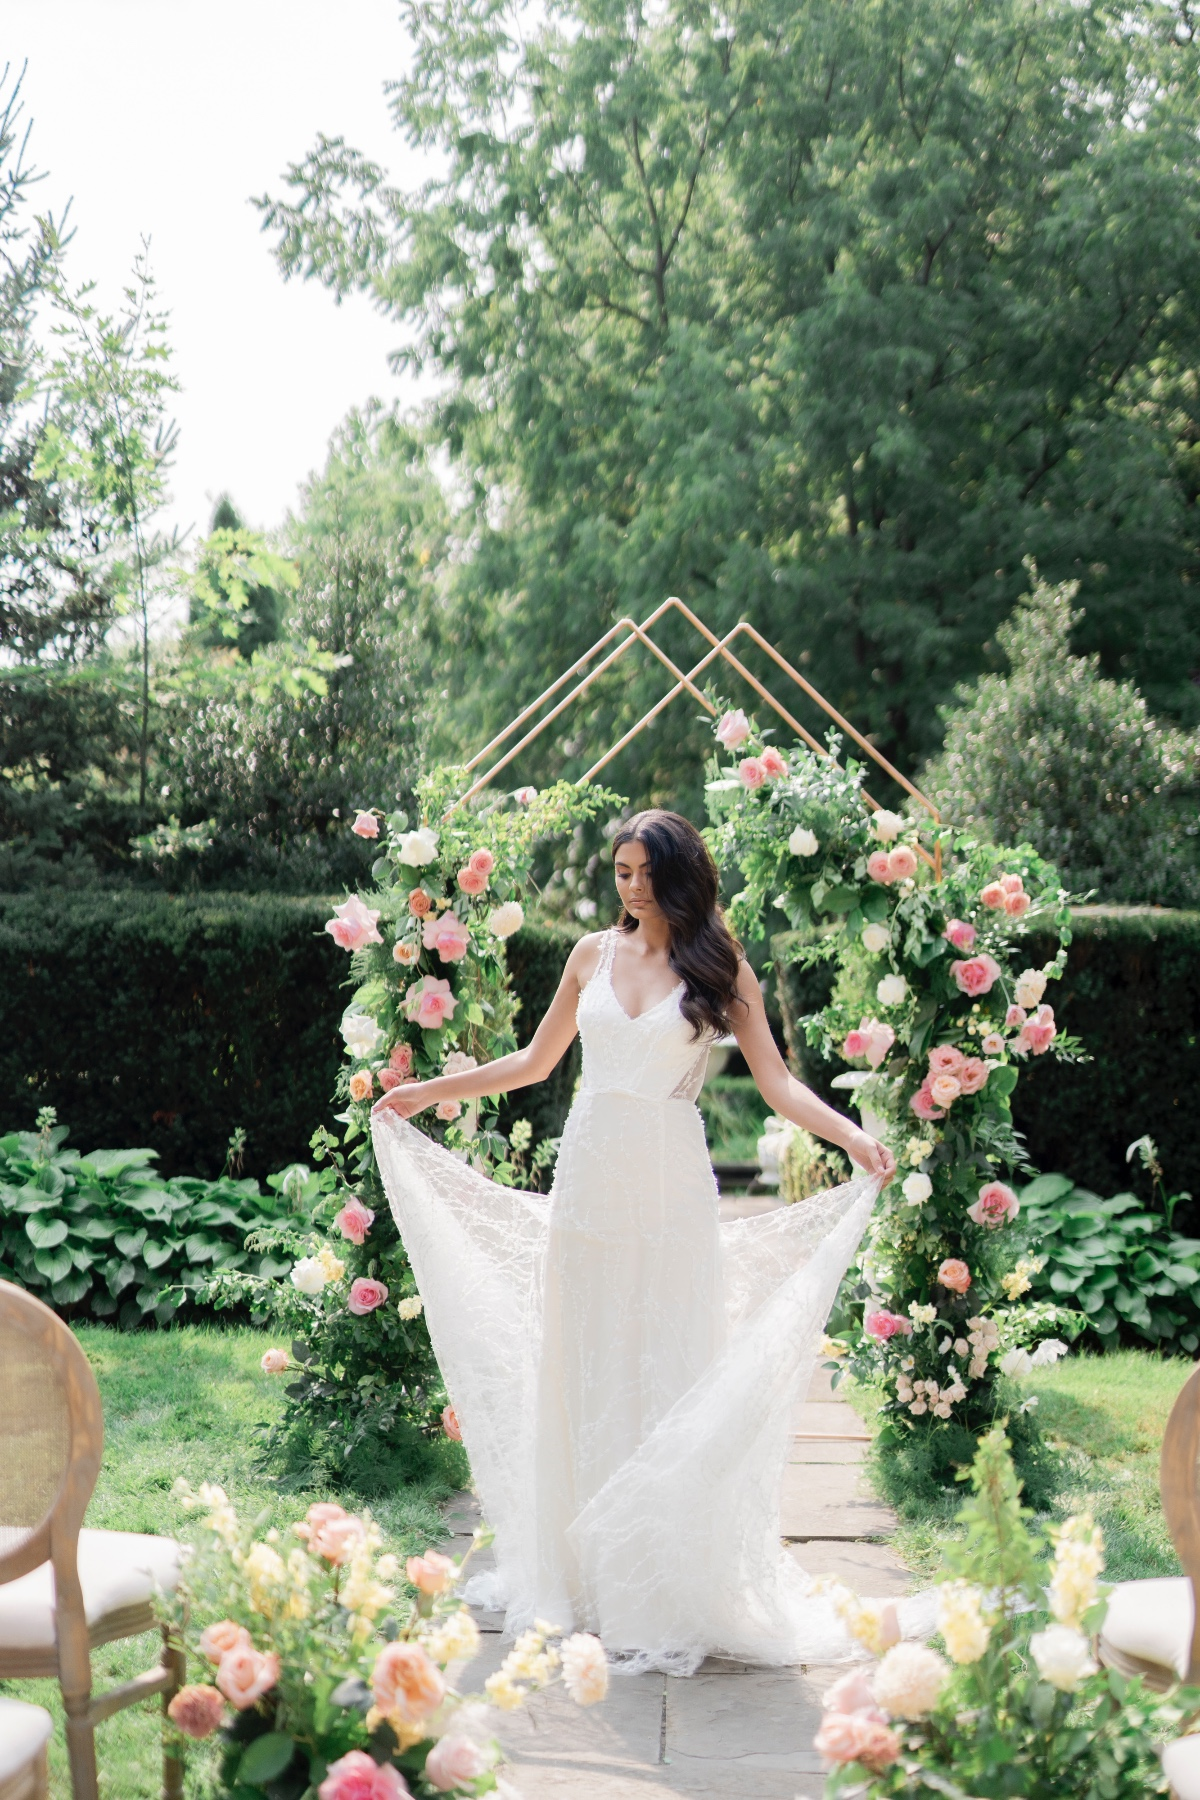 Geometric Orchard Wedding with Pink and Orange Flowers